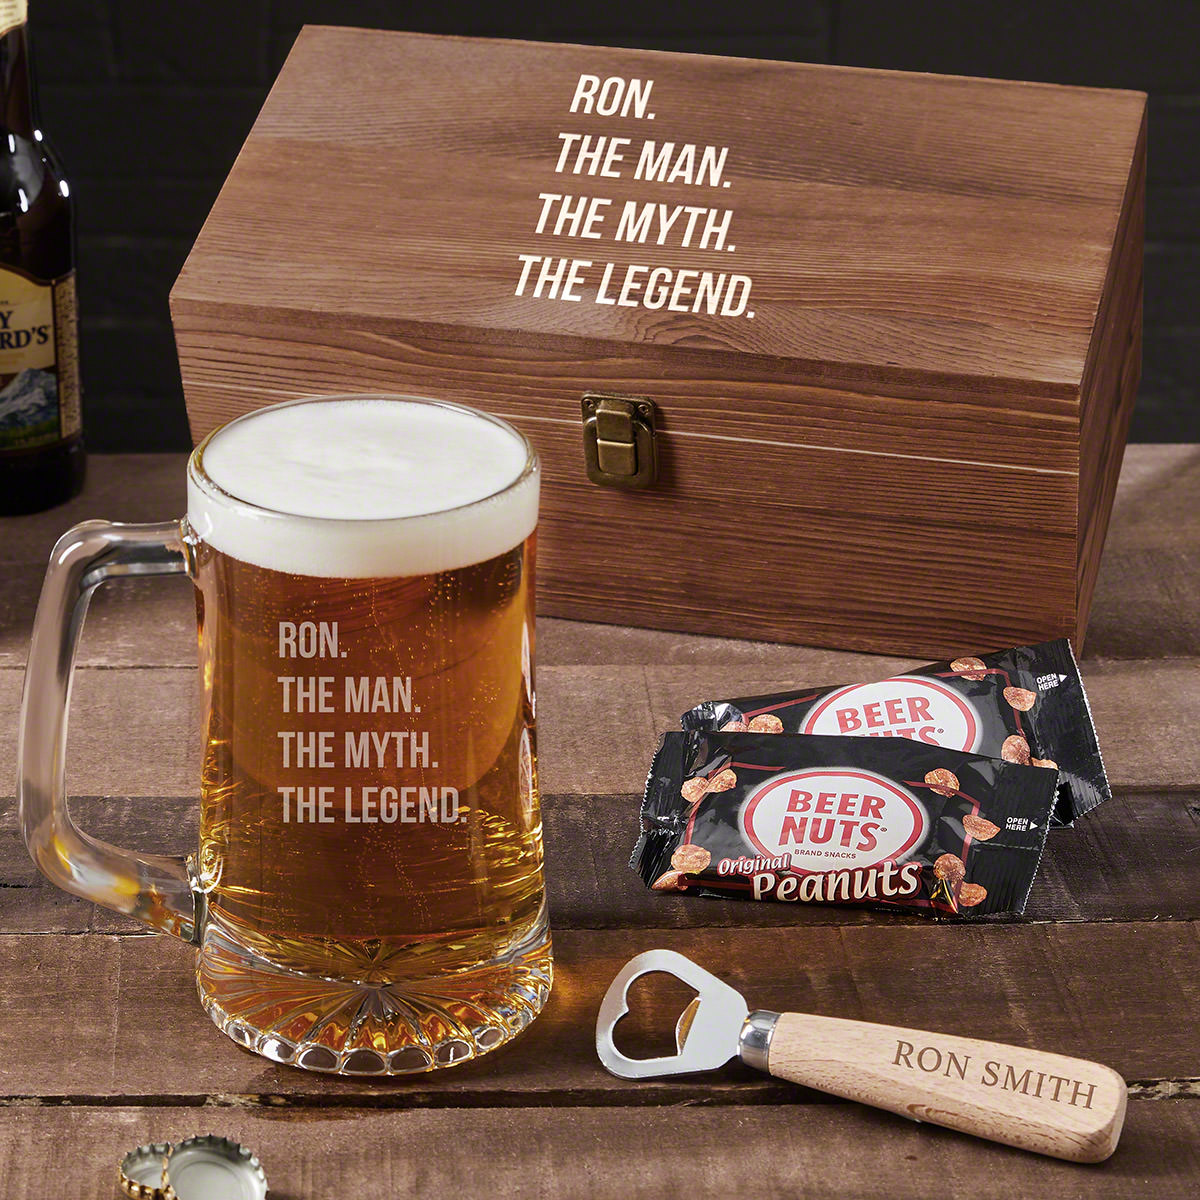 What's better than an awesome beer mug? An even more awesome custom beer mug set! This set includes not only a super cool mug, but a bottle opener, two packages of beer nuts, and a wooden box. You can use the handsome beech wood bottle opener to pop ope #mug